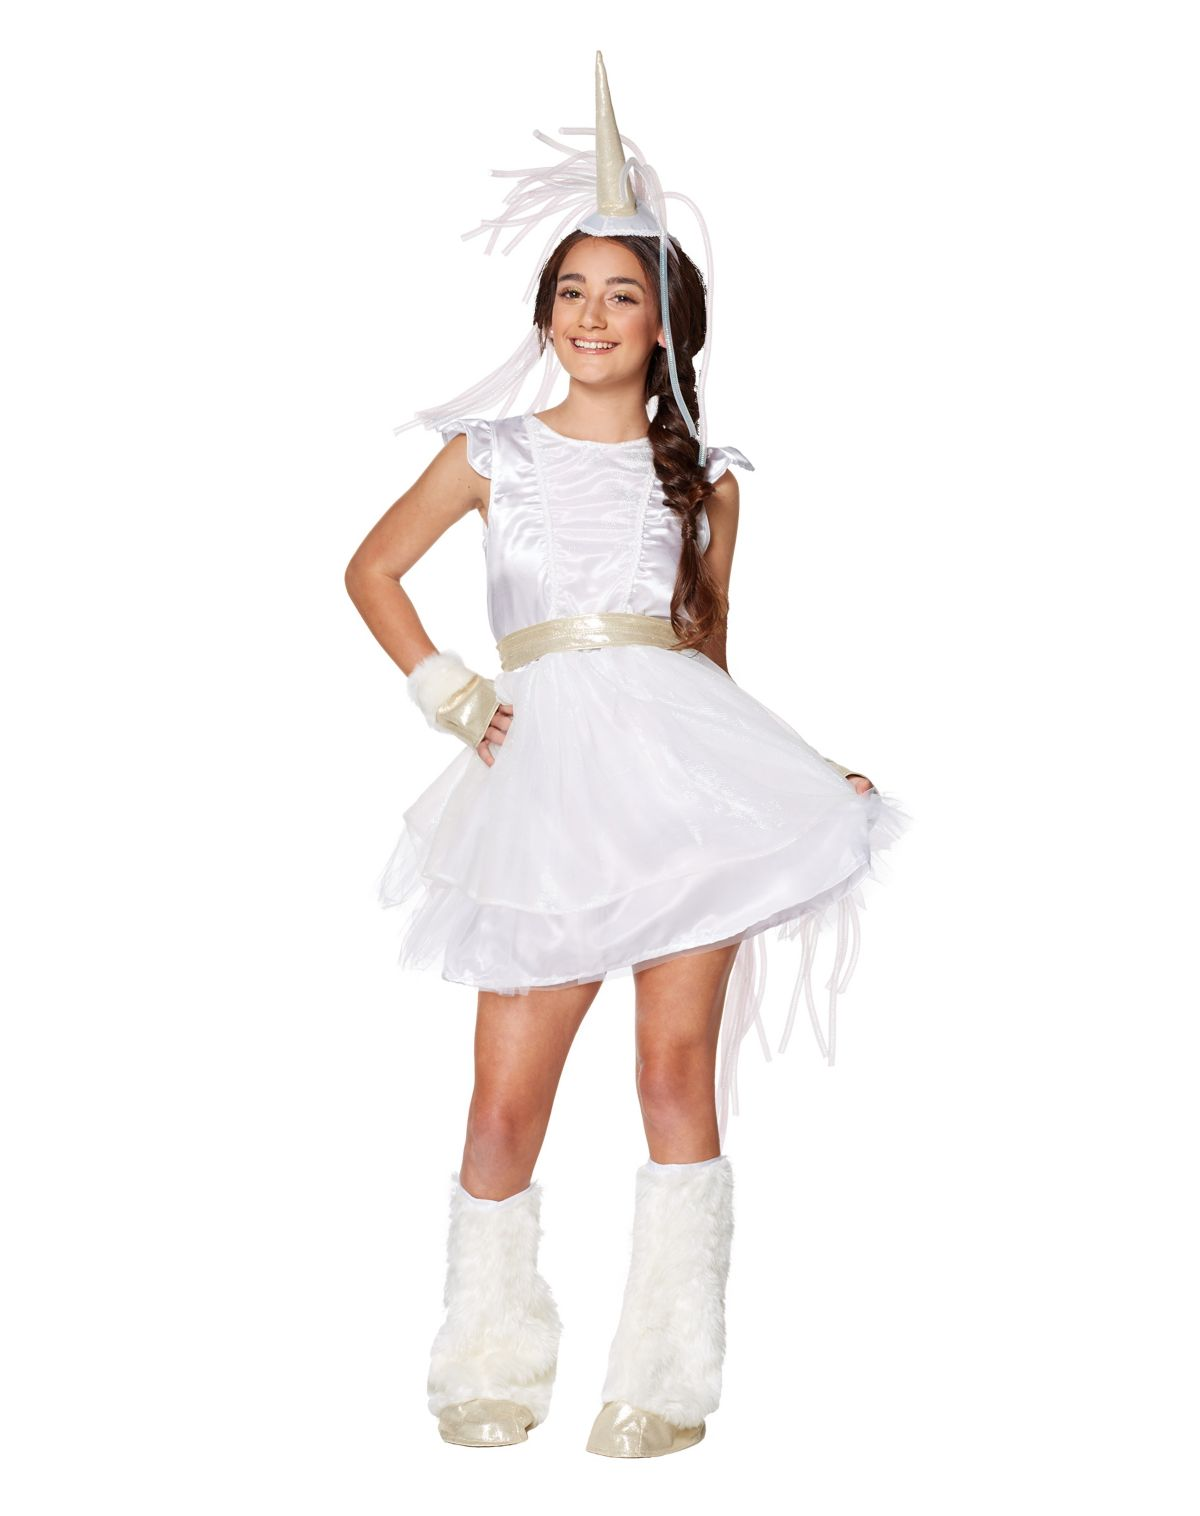 Shop costumes for Halloween and every occasion. We have costumes for every budget from professional stage costumes to clearance costumes and rentals, delivered nationwide in the US.